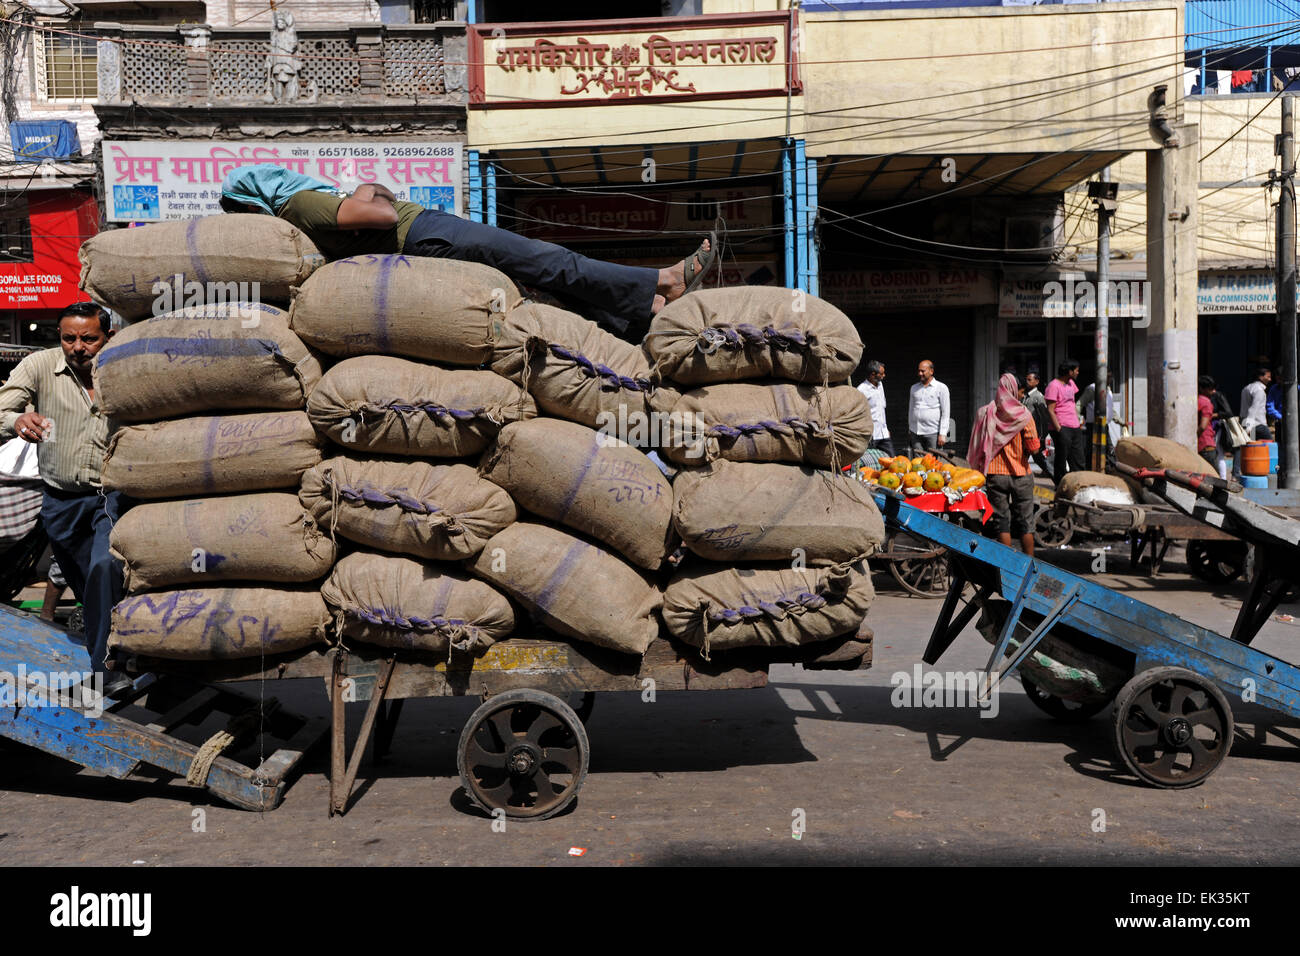 Worker sleeping over a pile of sacks of rice in the middle of a busy market in Delhi,India - Stock Image